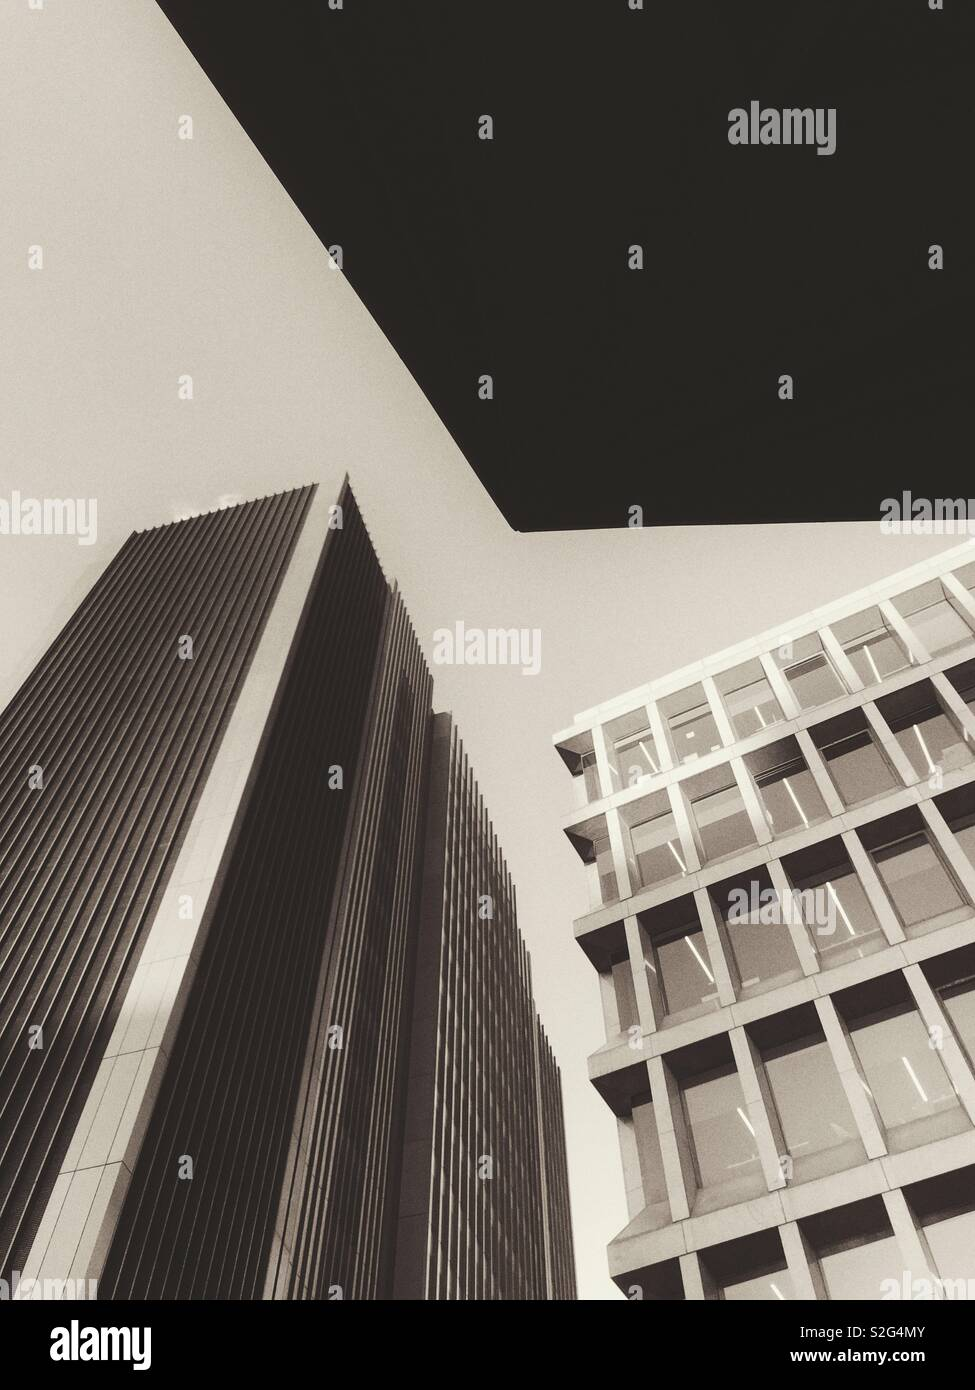 Abstract view of buildings in the City of London - Stock Image